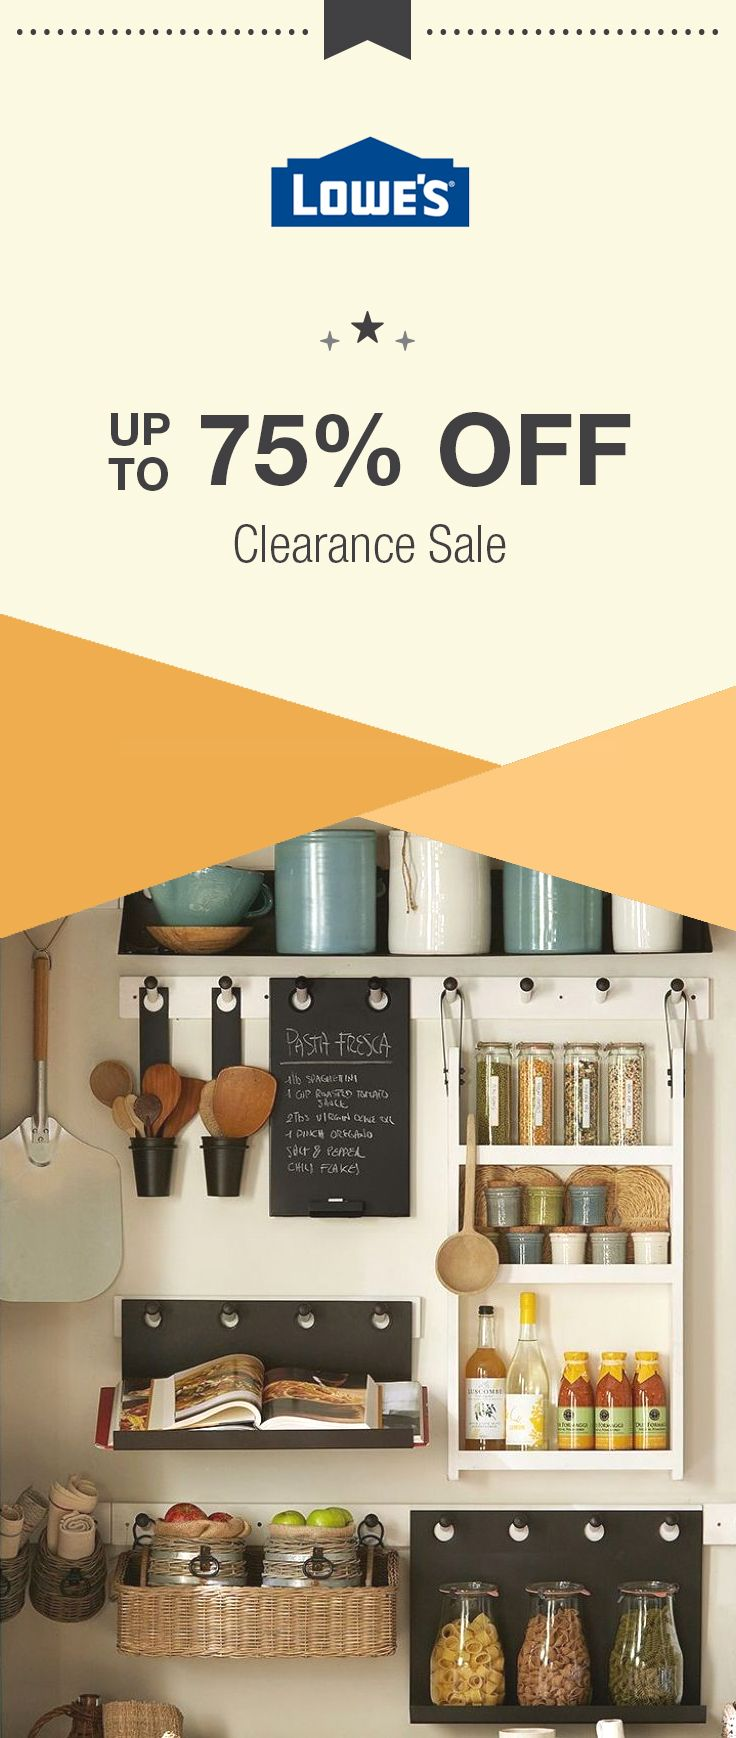 Right Now Lowes Is Offering Up To 75 Off Clearance Sale Plus